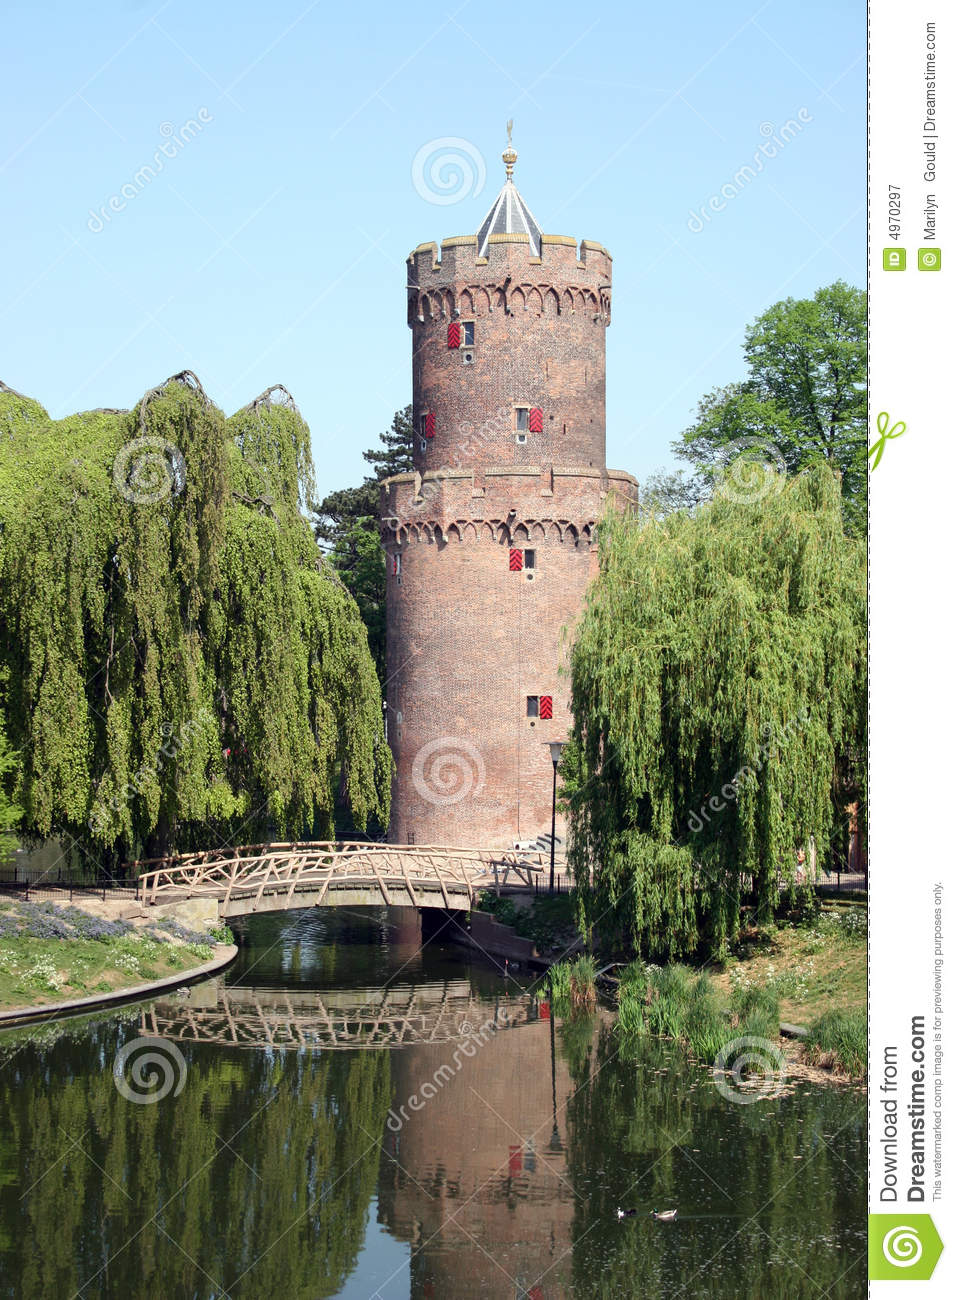 castle turret royalty free stock photography